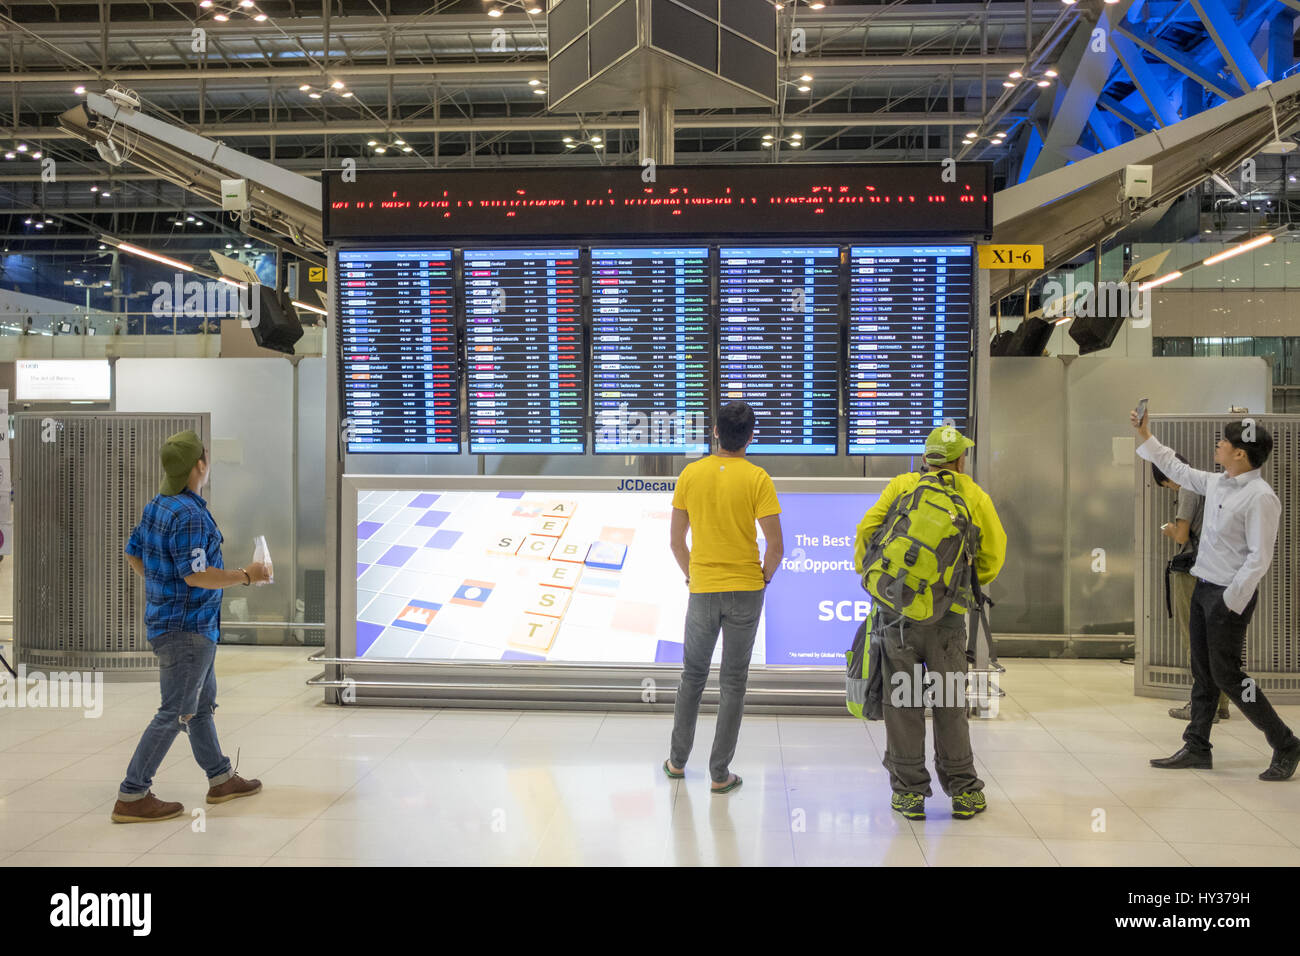 Travellers checking departures at Suvarnabhumi Airport in Bangkok. This is one of the busiest airports in the world. - Stock Image